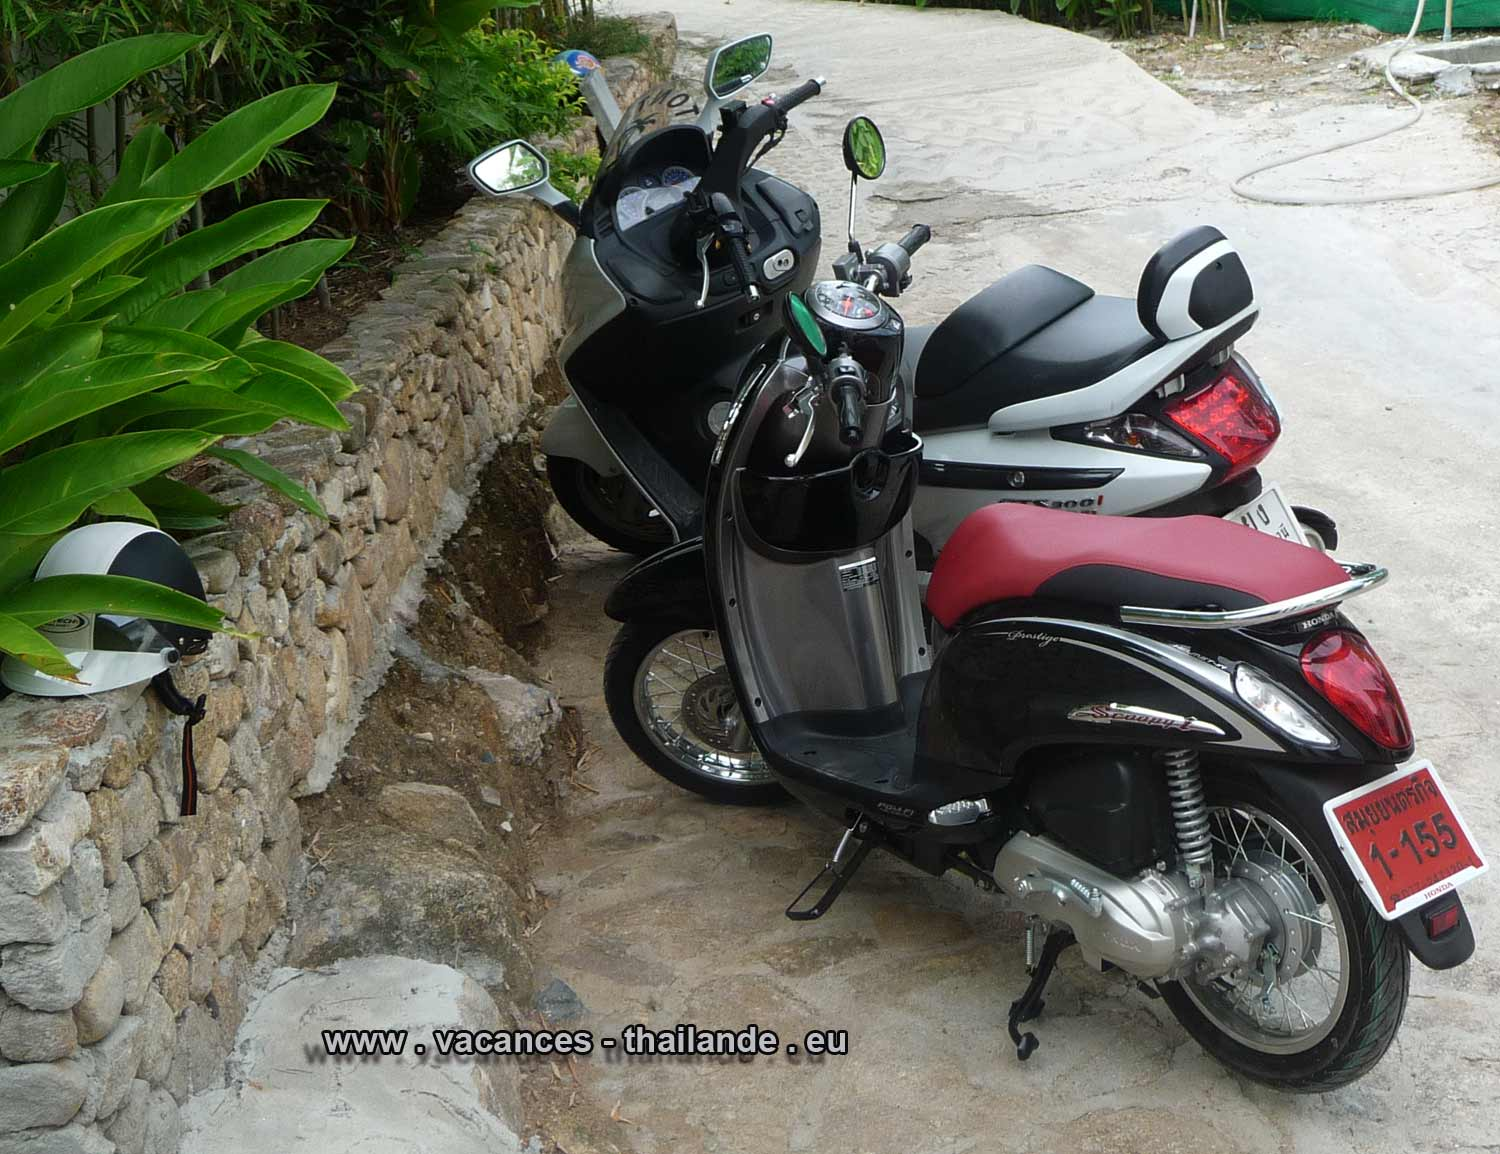 p32 scooters Honda of 110, 150, 300 ccm leased the house and are available on arrival and especially without formalities so called resting ansi that helmets has samui koh thailande.html